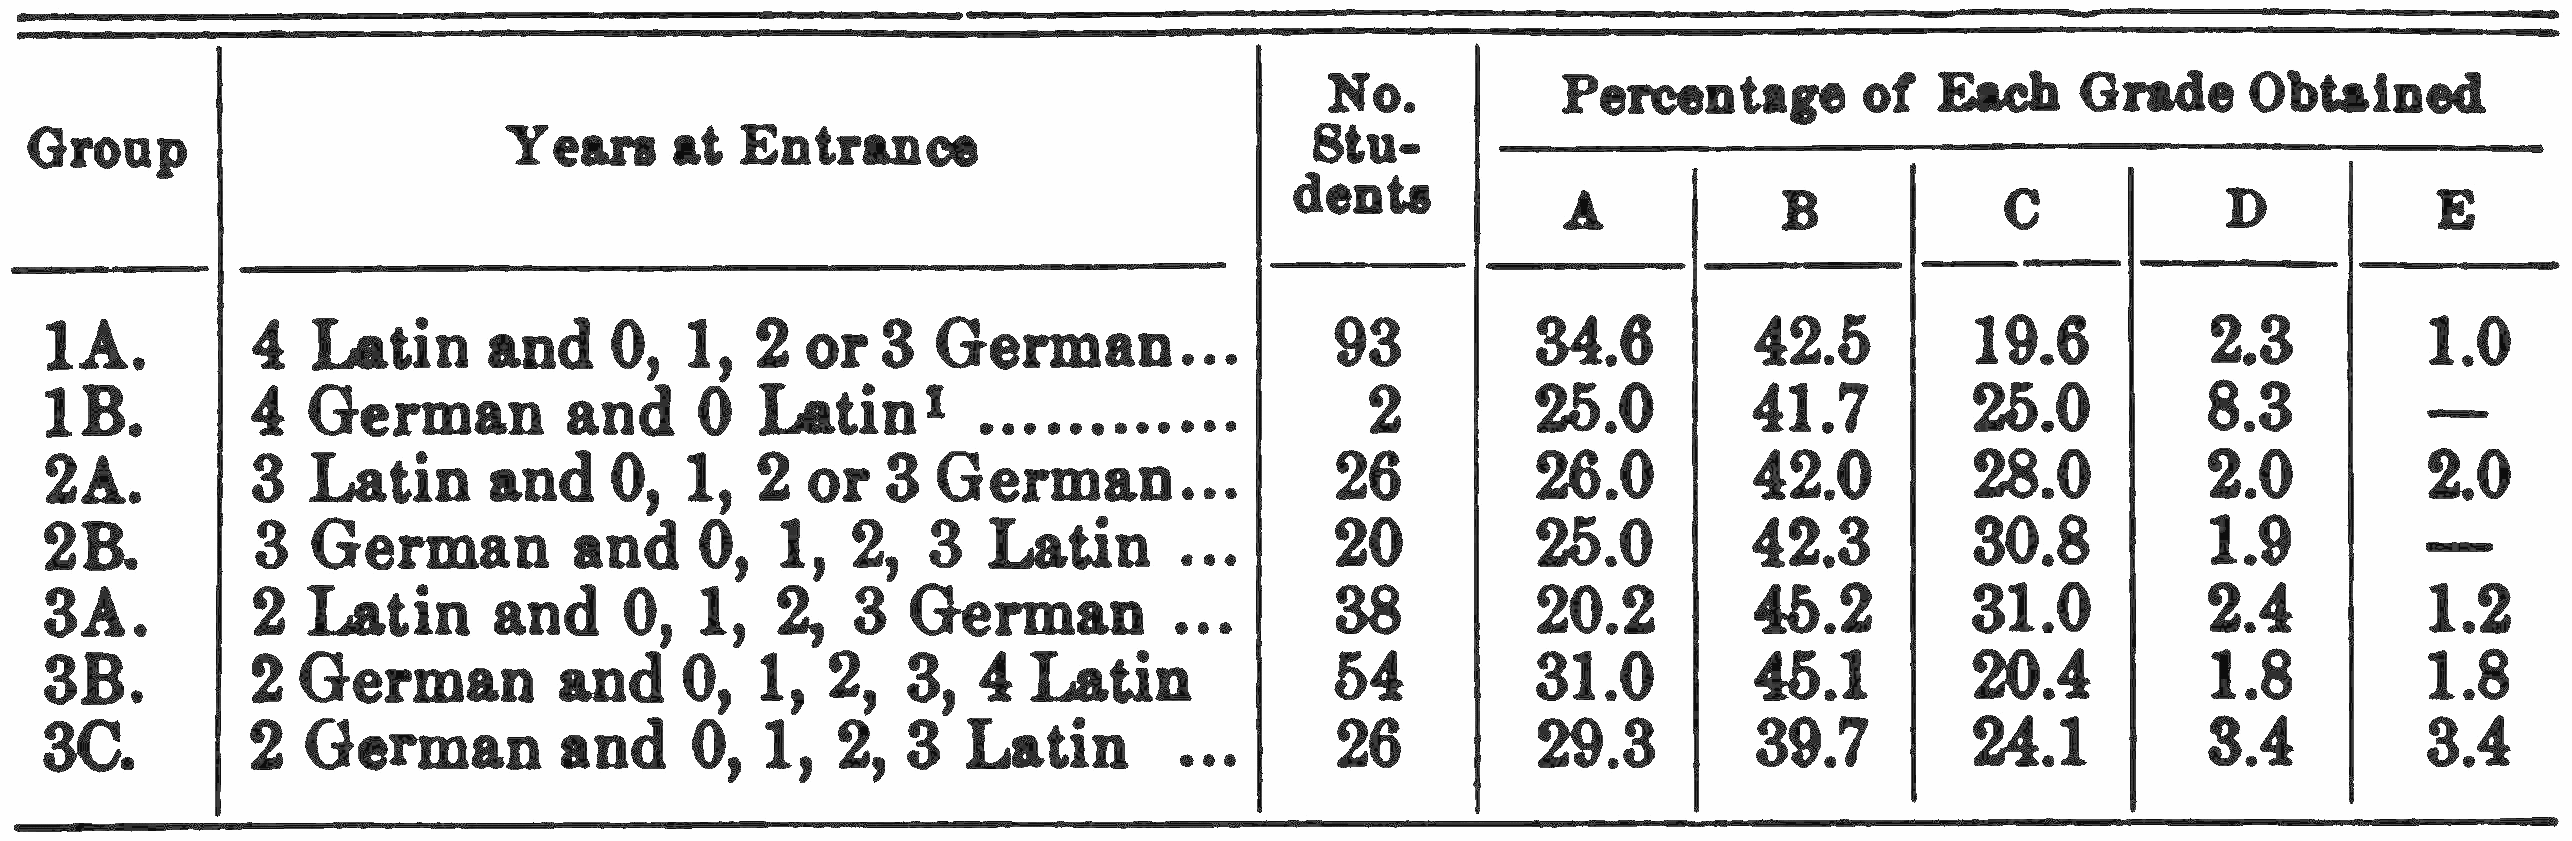 PSM V75 D398 Grades obtained in the english department 1903 to 1907 2.png